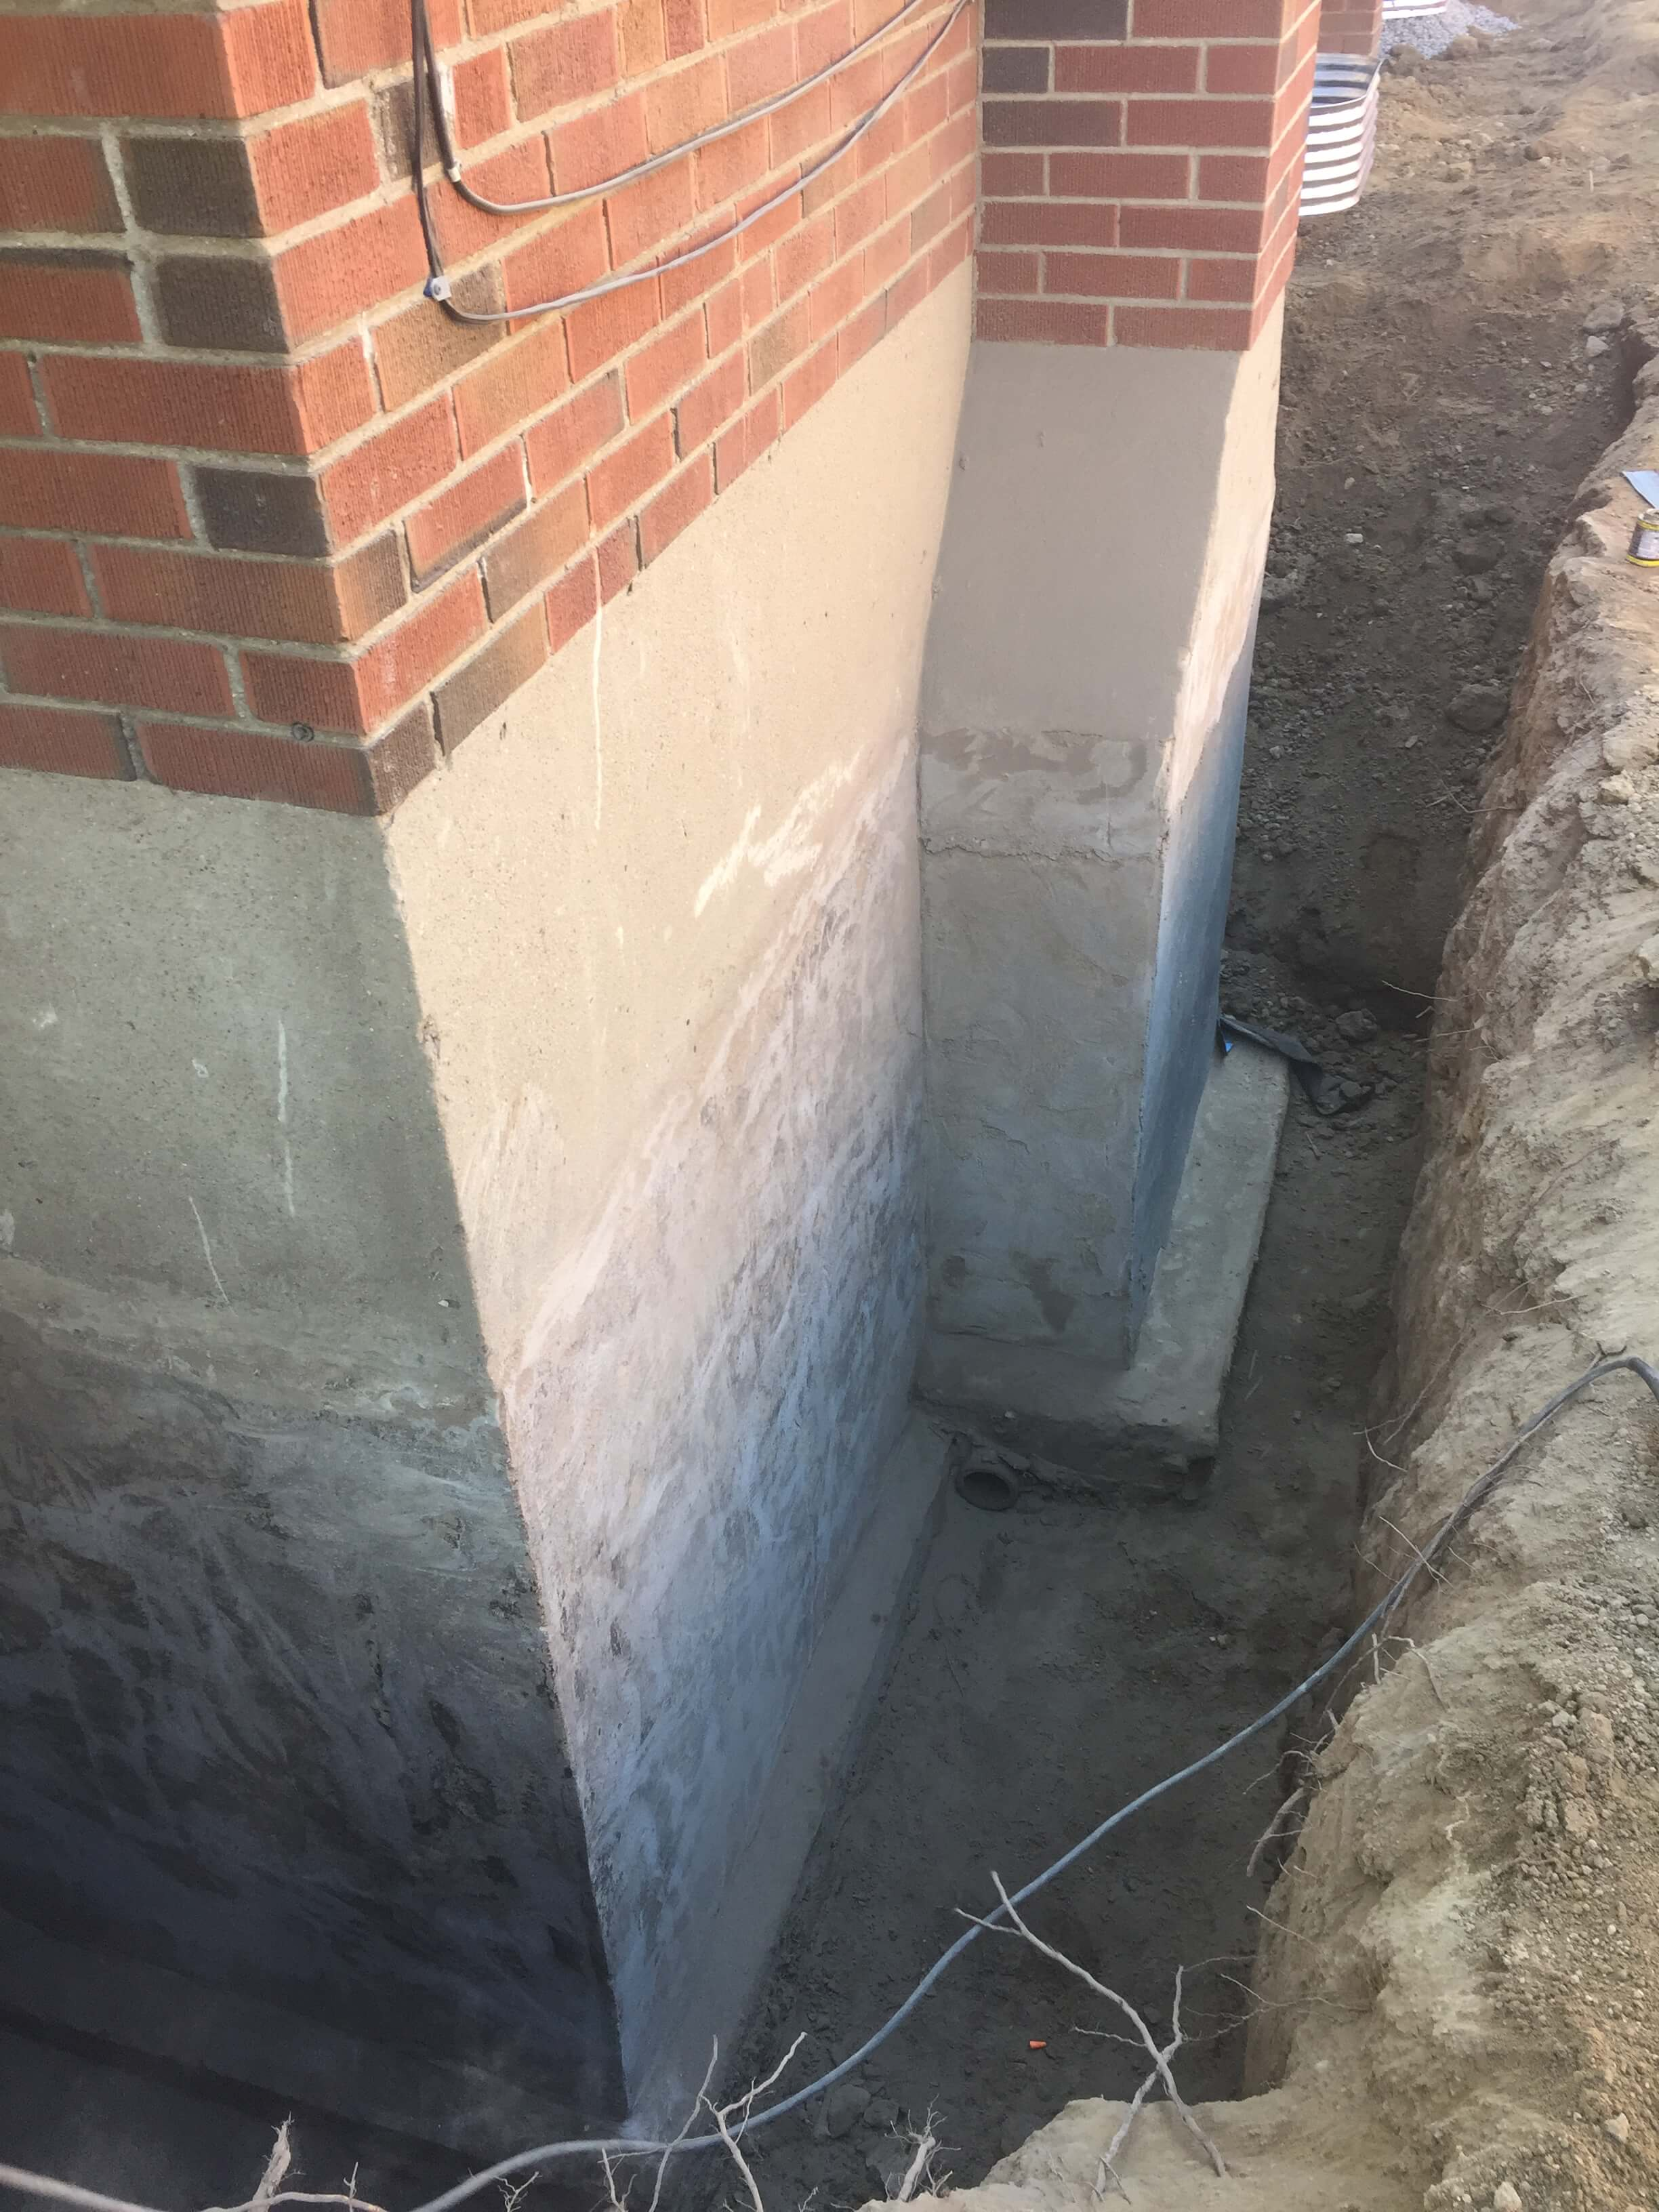 Waterproofing-Contractor-Toronto-Scarborough-Citadel-Dr-5